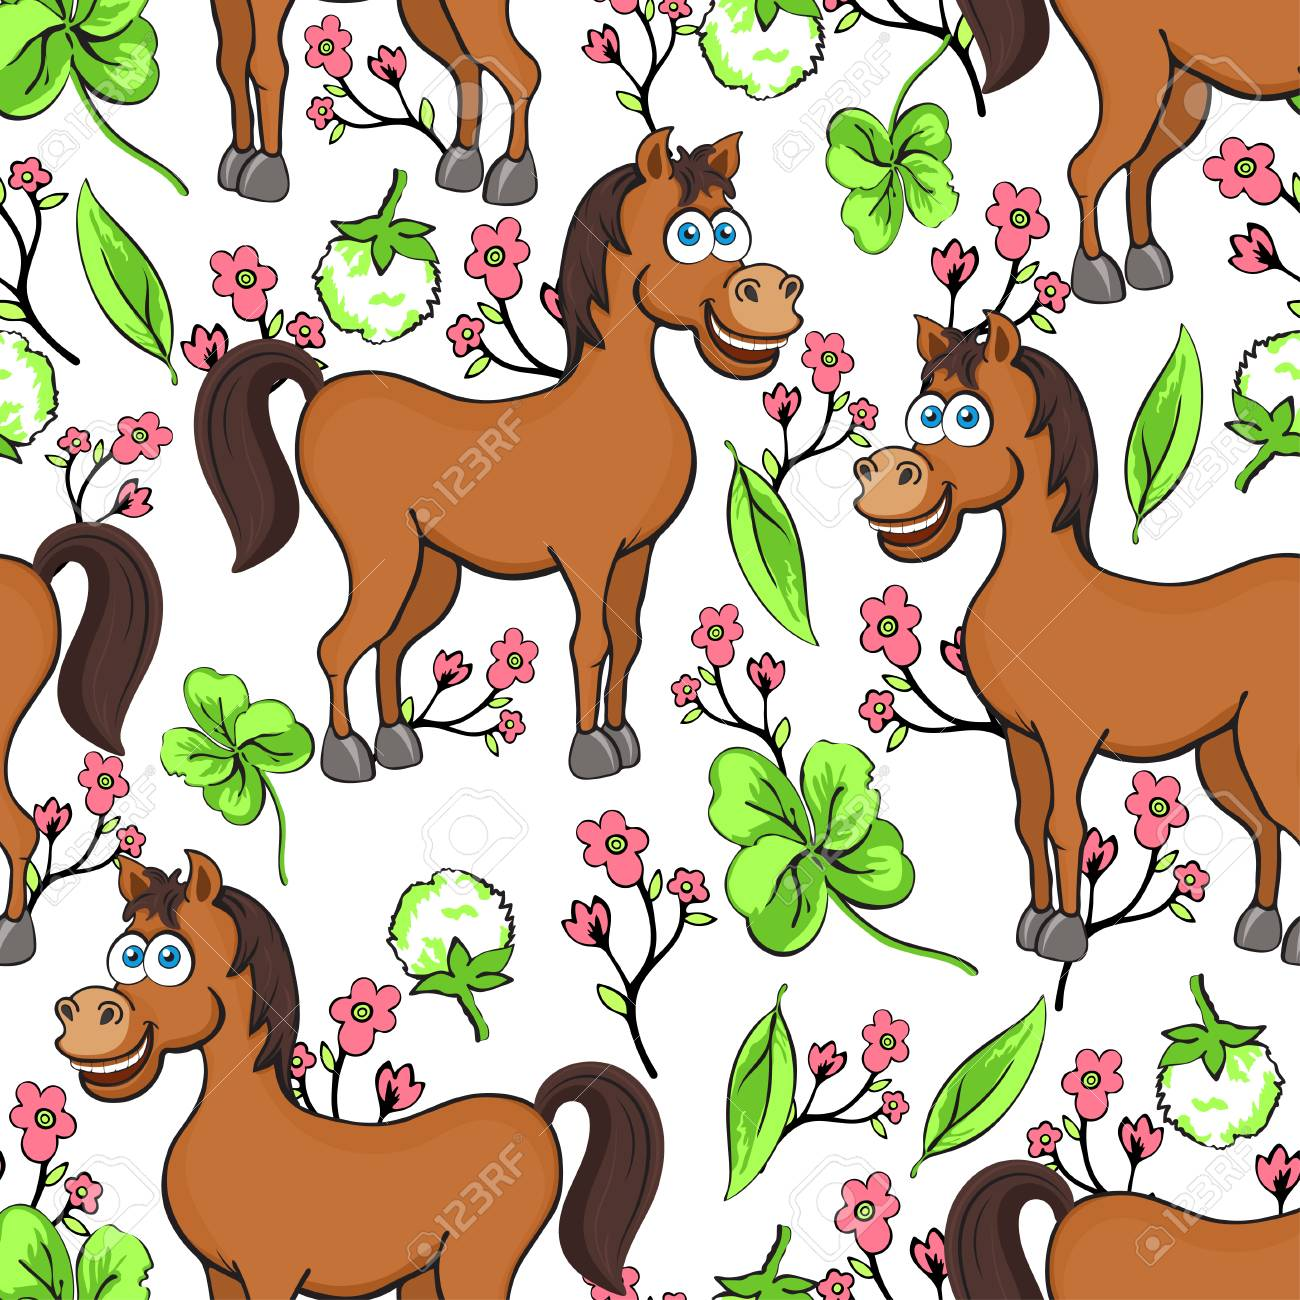 Horse Cartoon Drawing Seamless Pattern Vector Illustration Royalty Free Cliparts Vectors And Stock Illustration Image 114993081